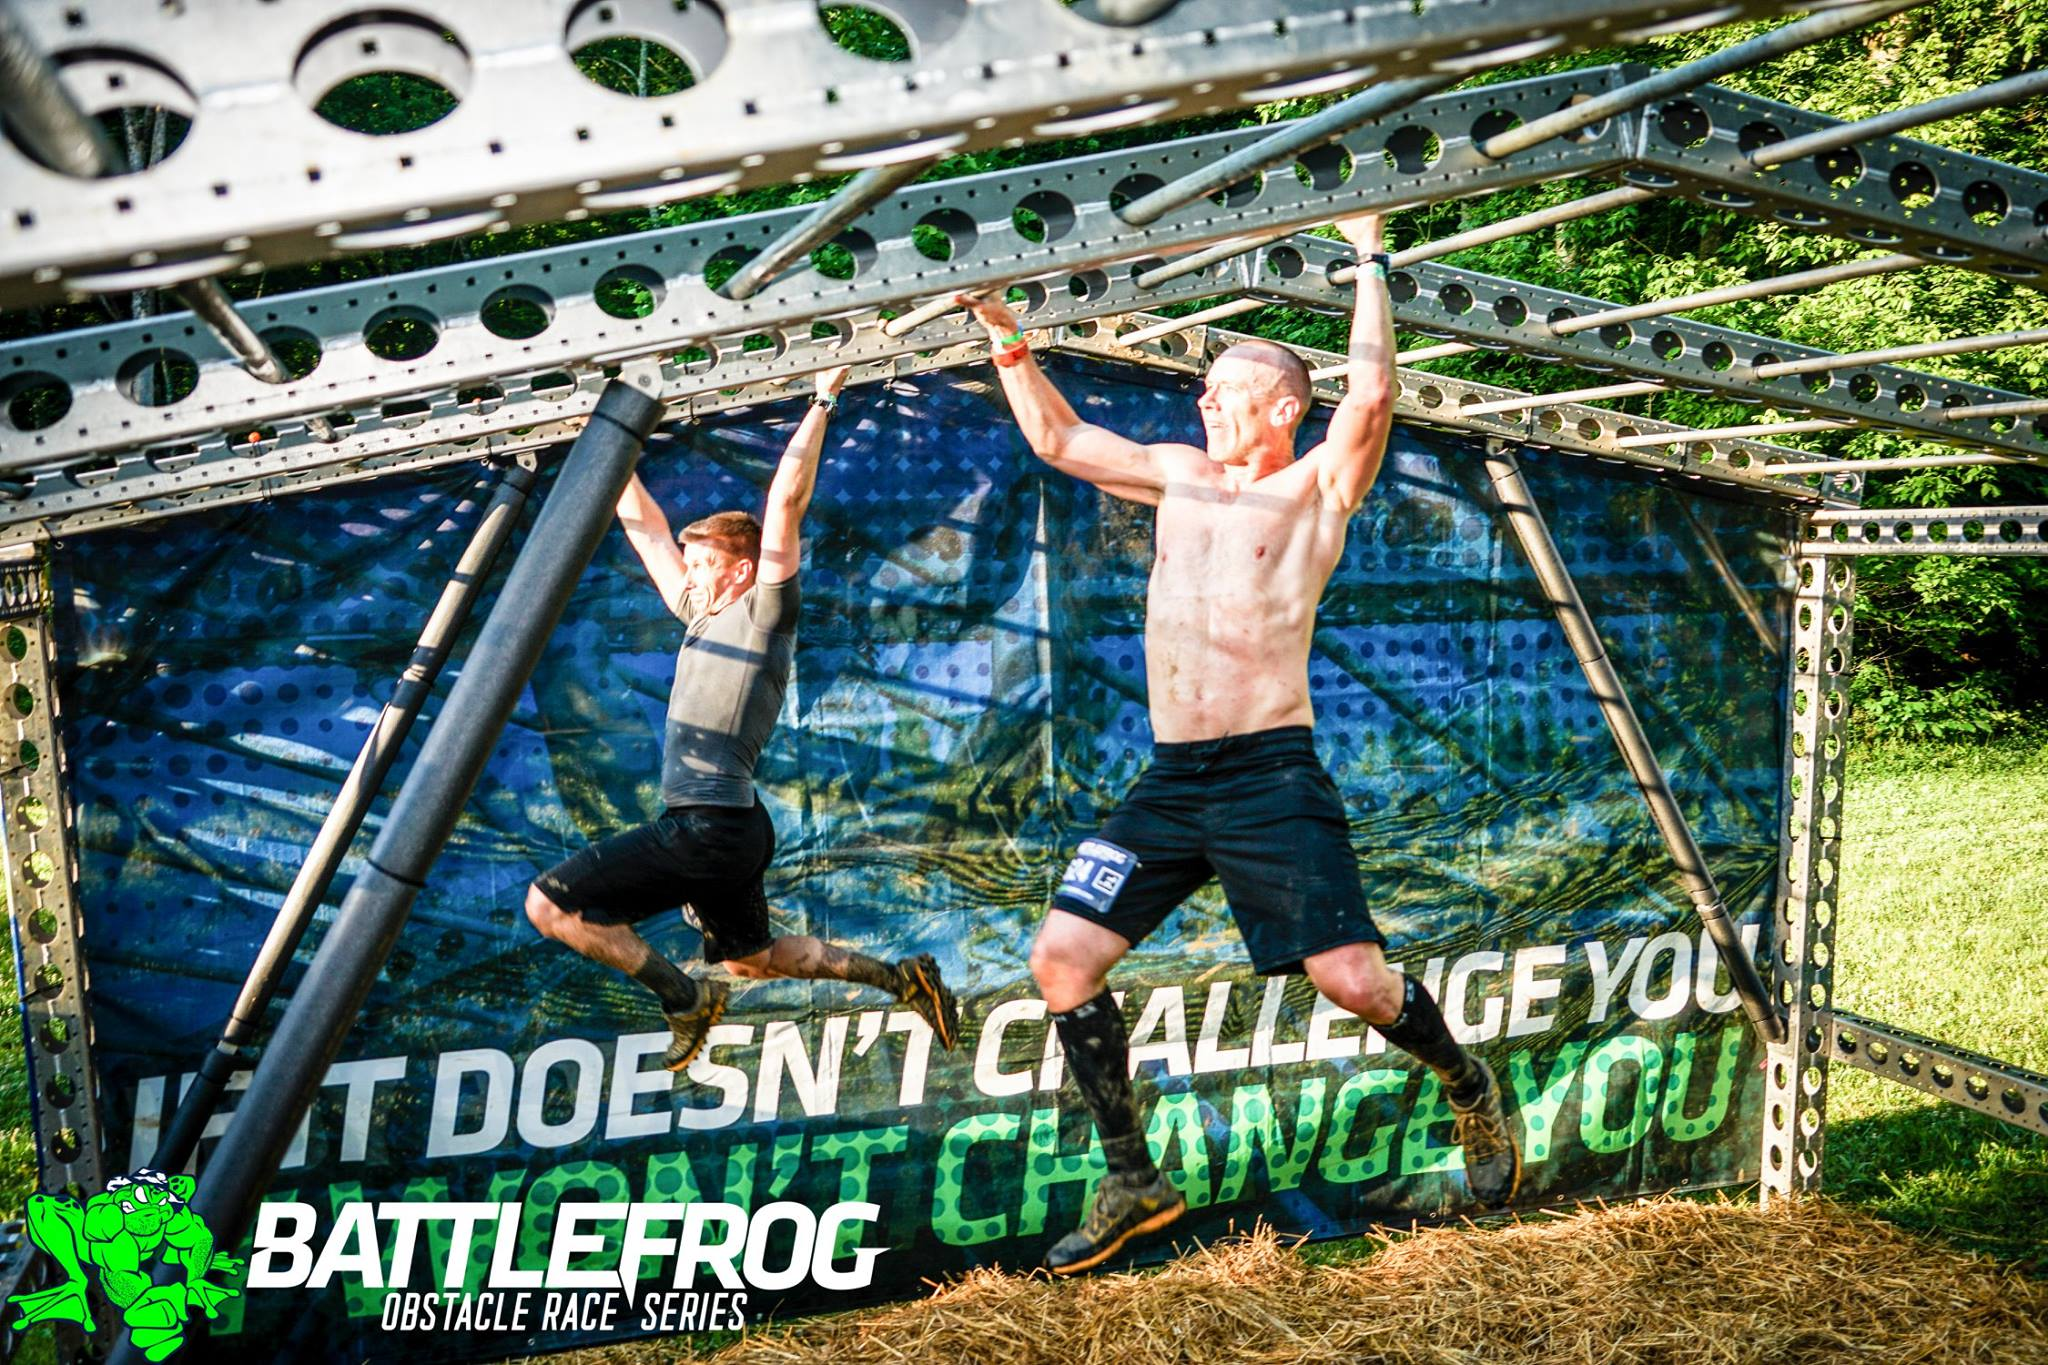 Battlefrog-Louisville-2016-Race-Recap-Monkey Bars